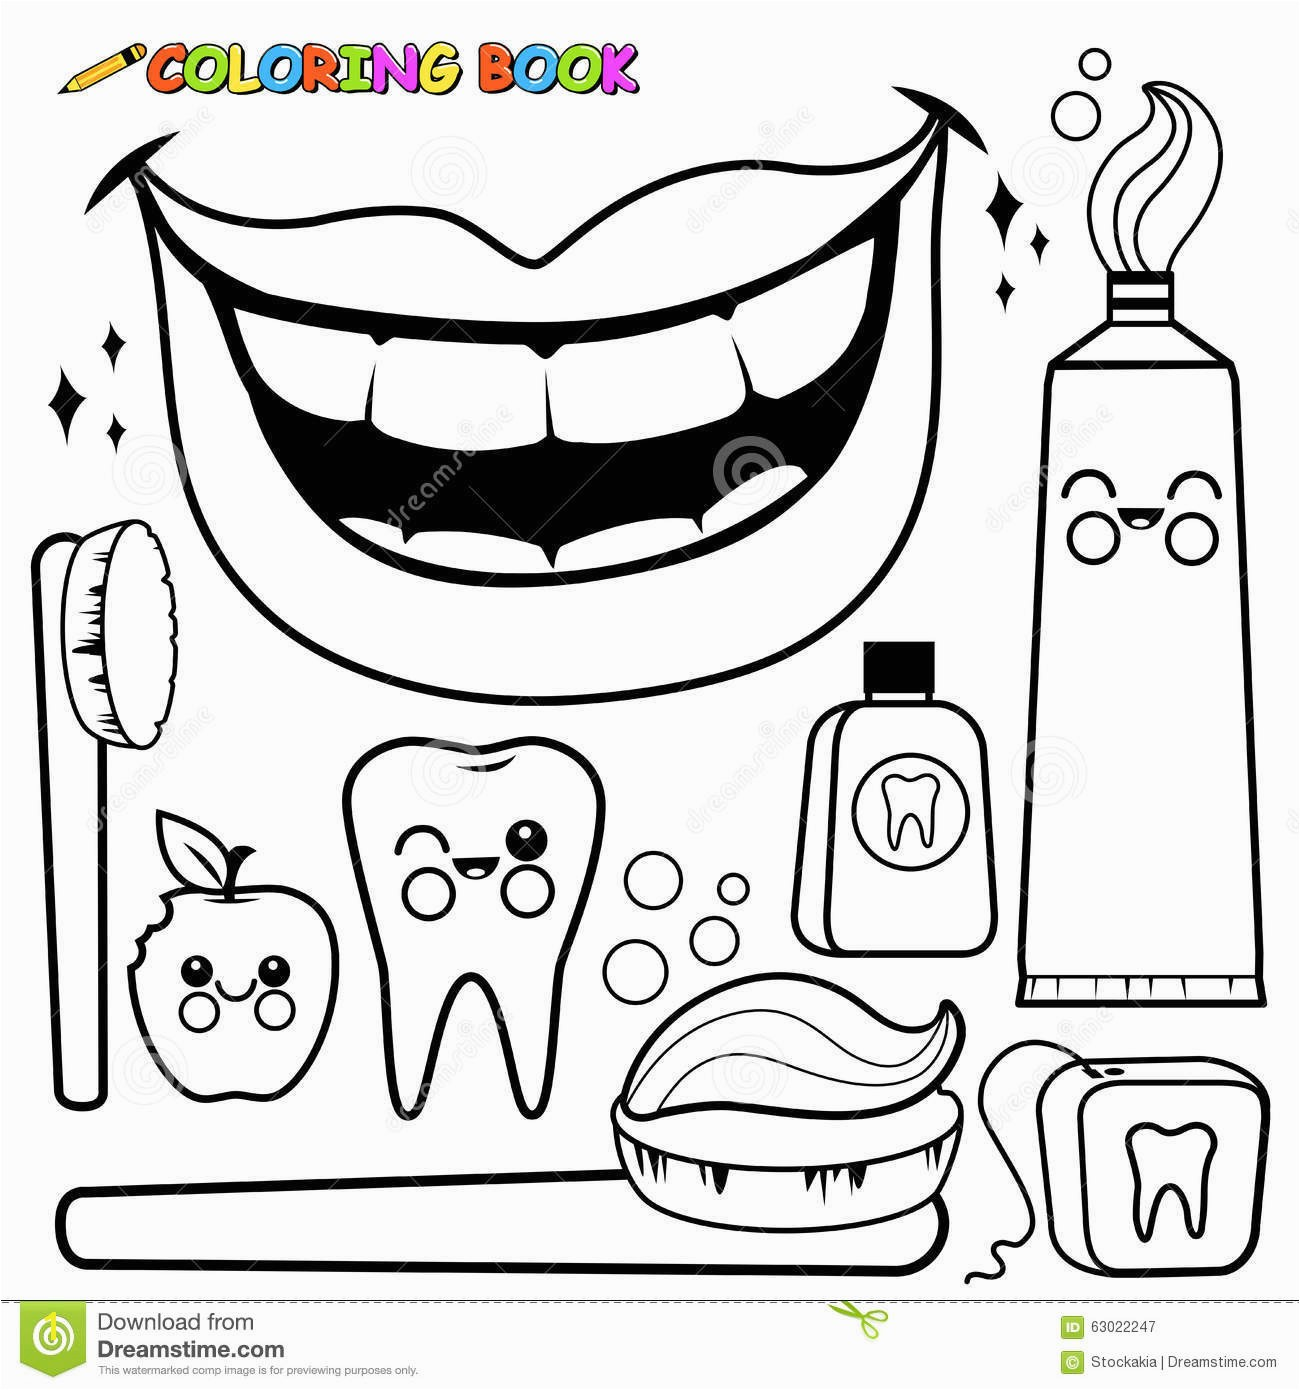 Opportunities Braces Coloring Pages Dentist And Kid Dental Page Dinosaur Teeth